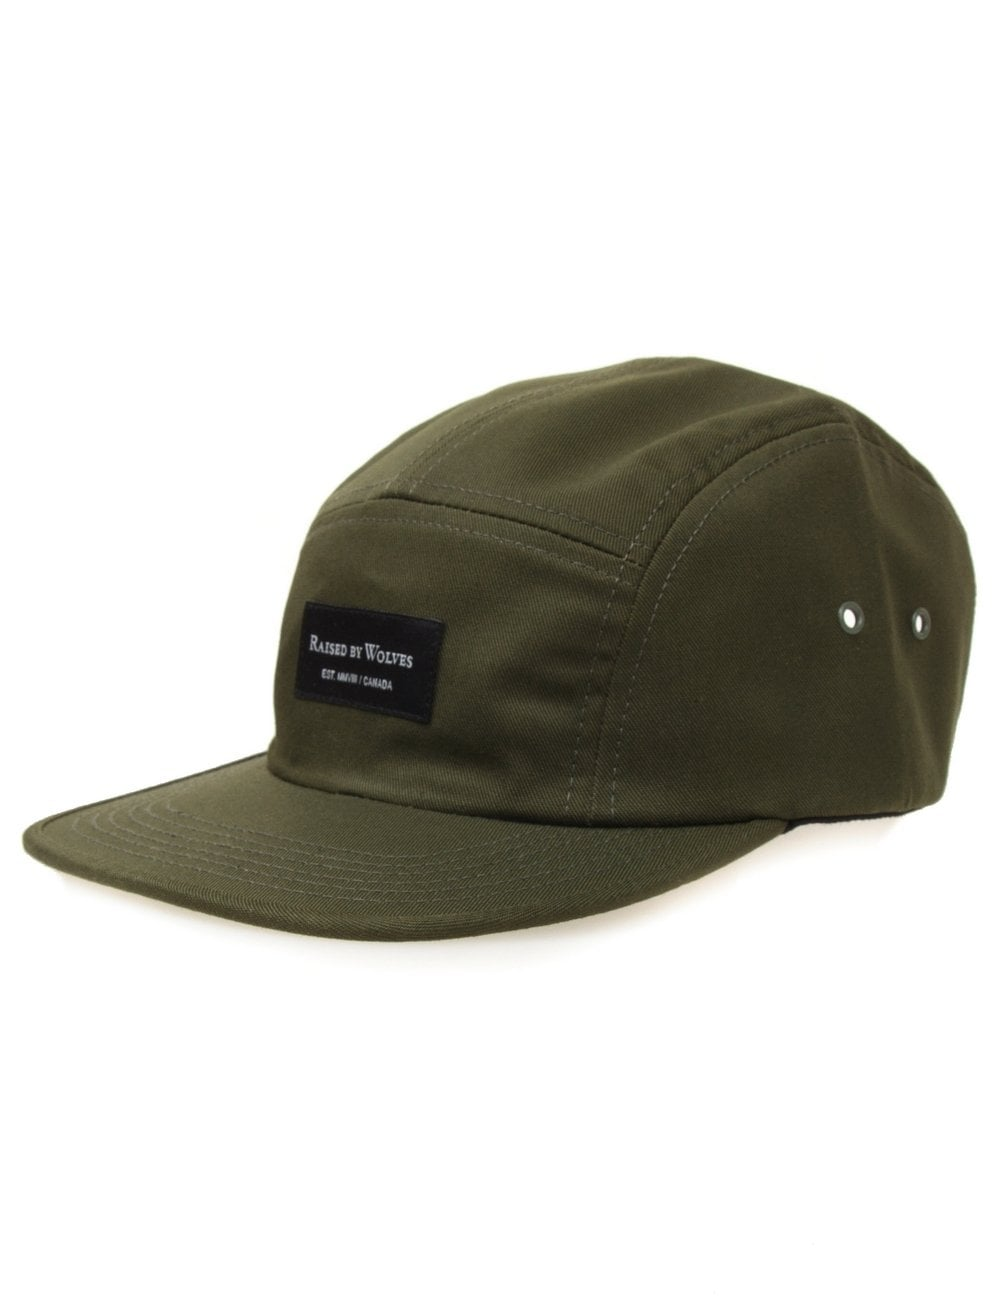 1bef19e1167 Raised by Wolves Algonquin 5 Panel Hat - Olive Drab Twill ...